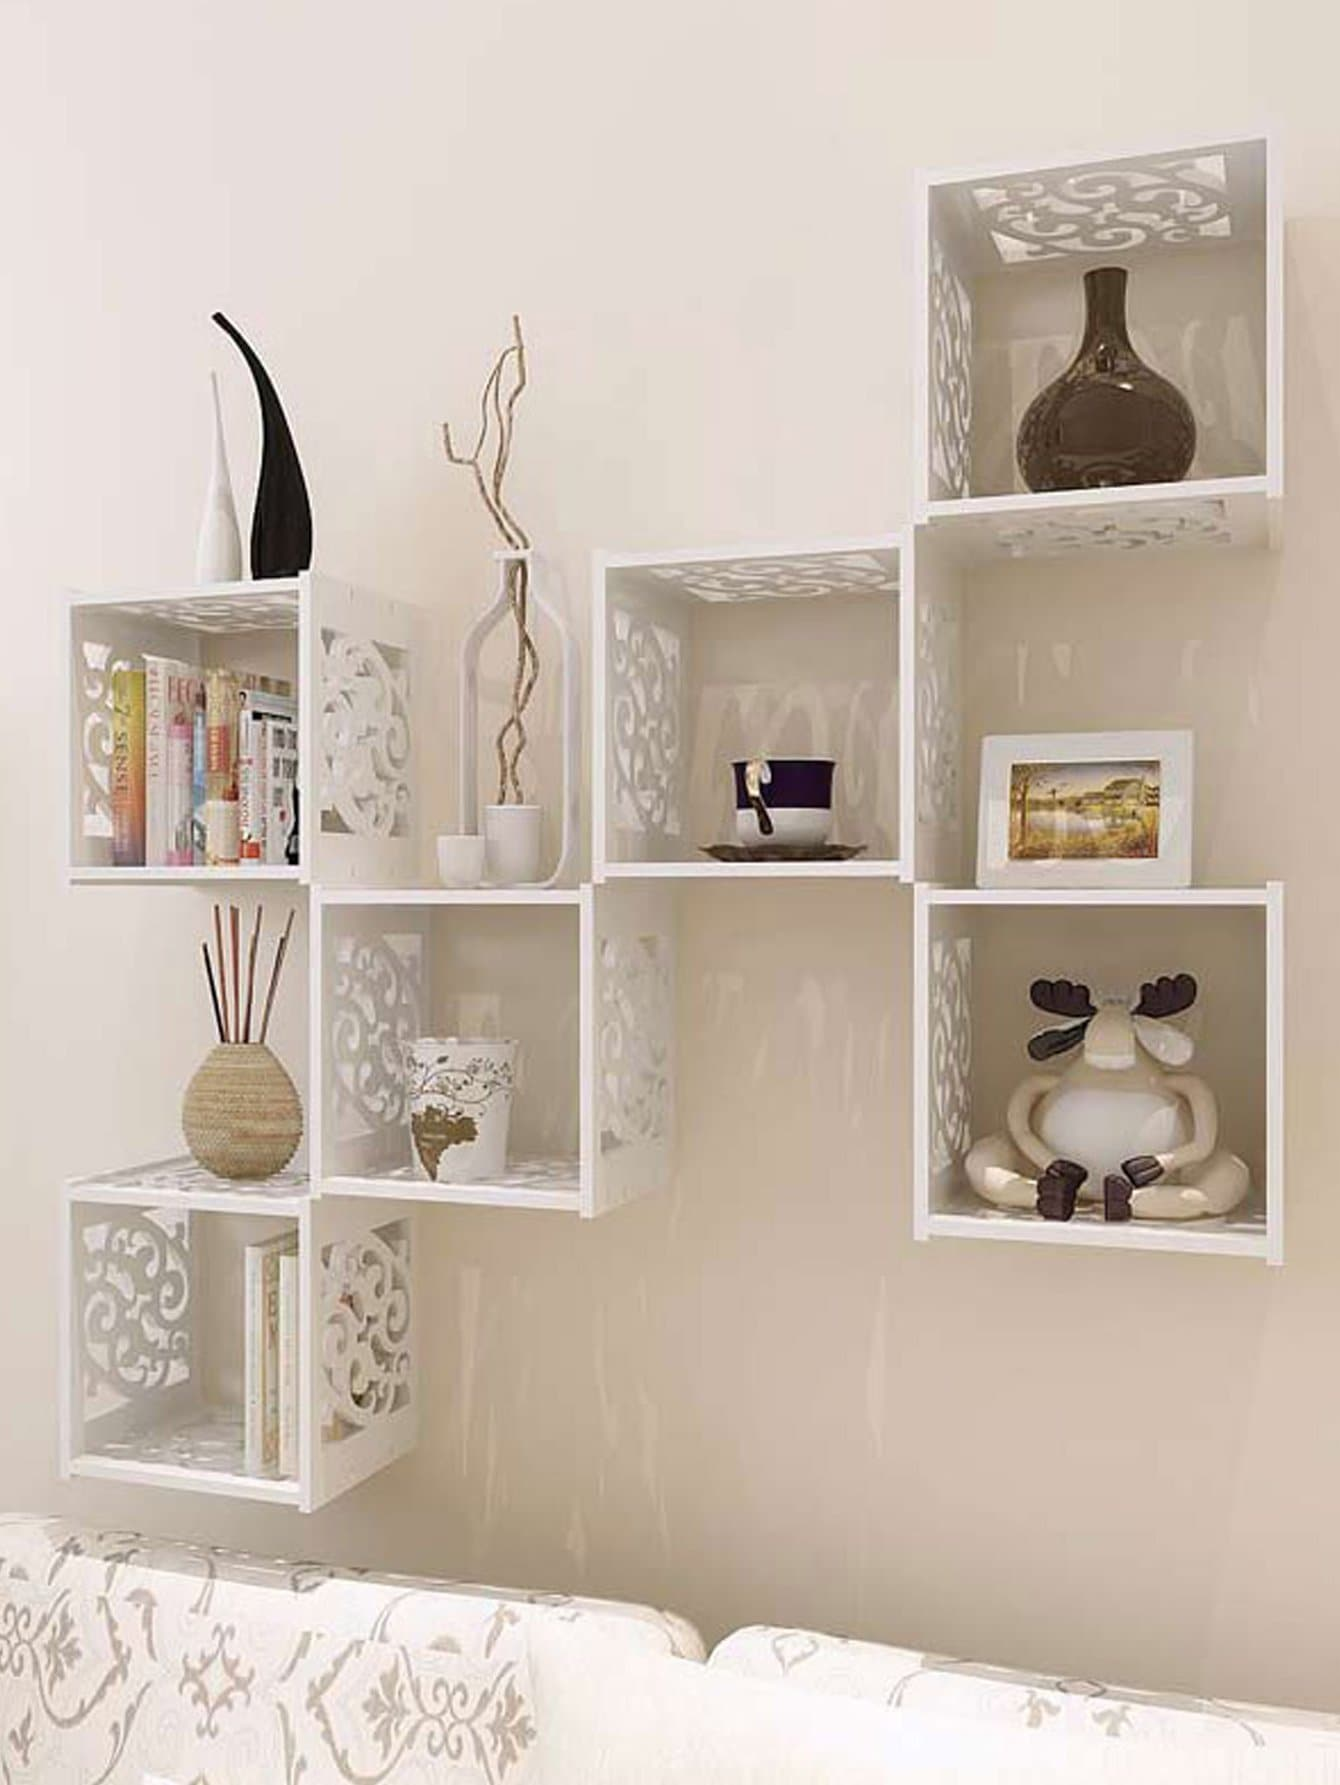 Wall Grid Hollow Grid Cantilever Wall Shelf 1pc